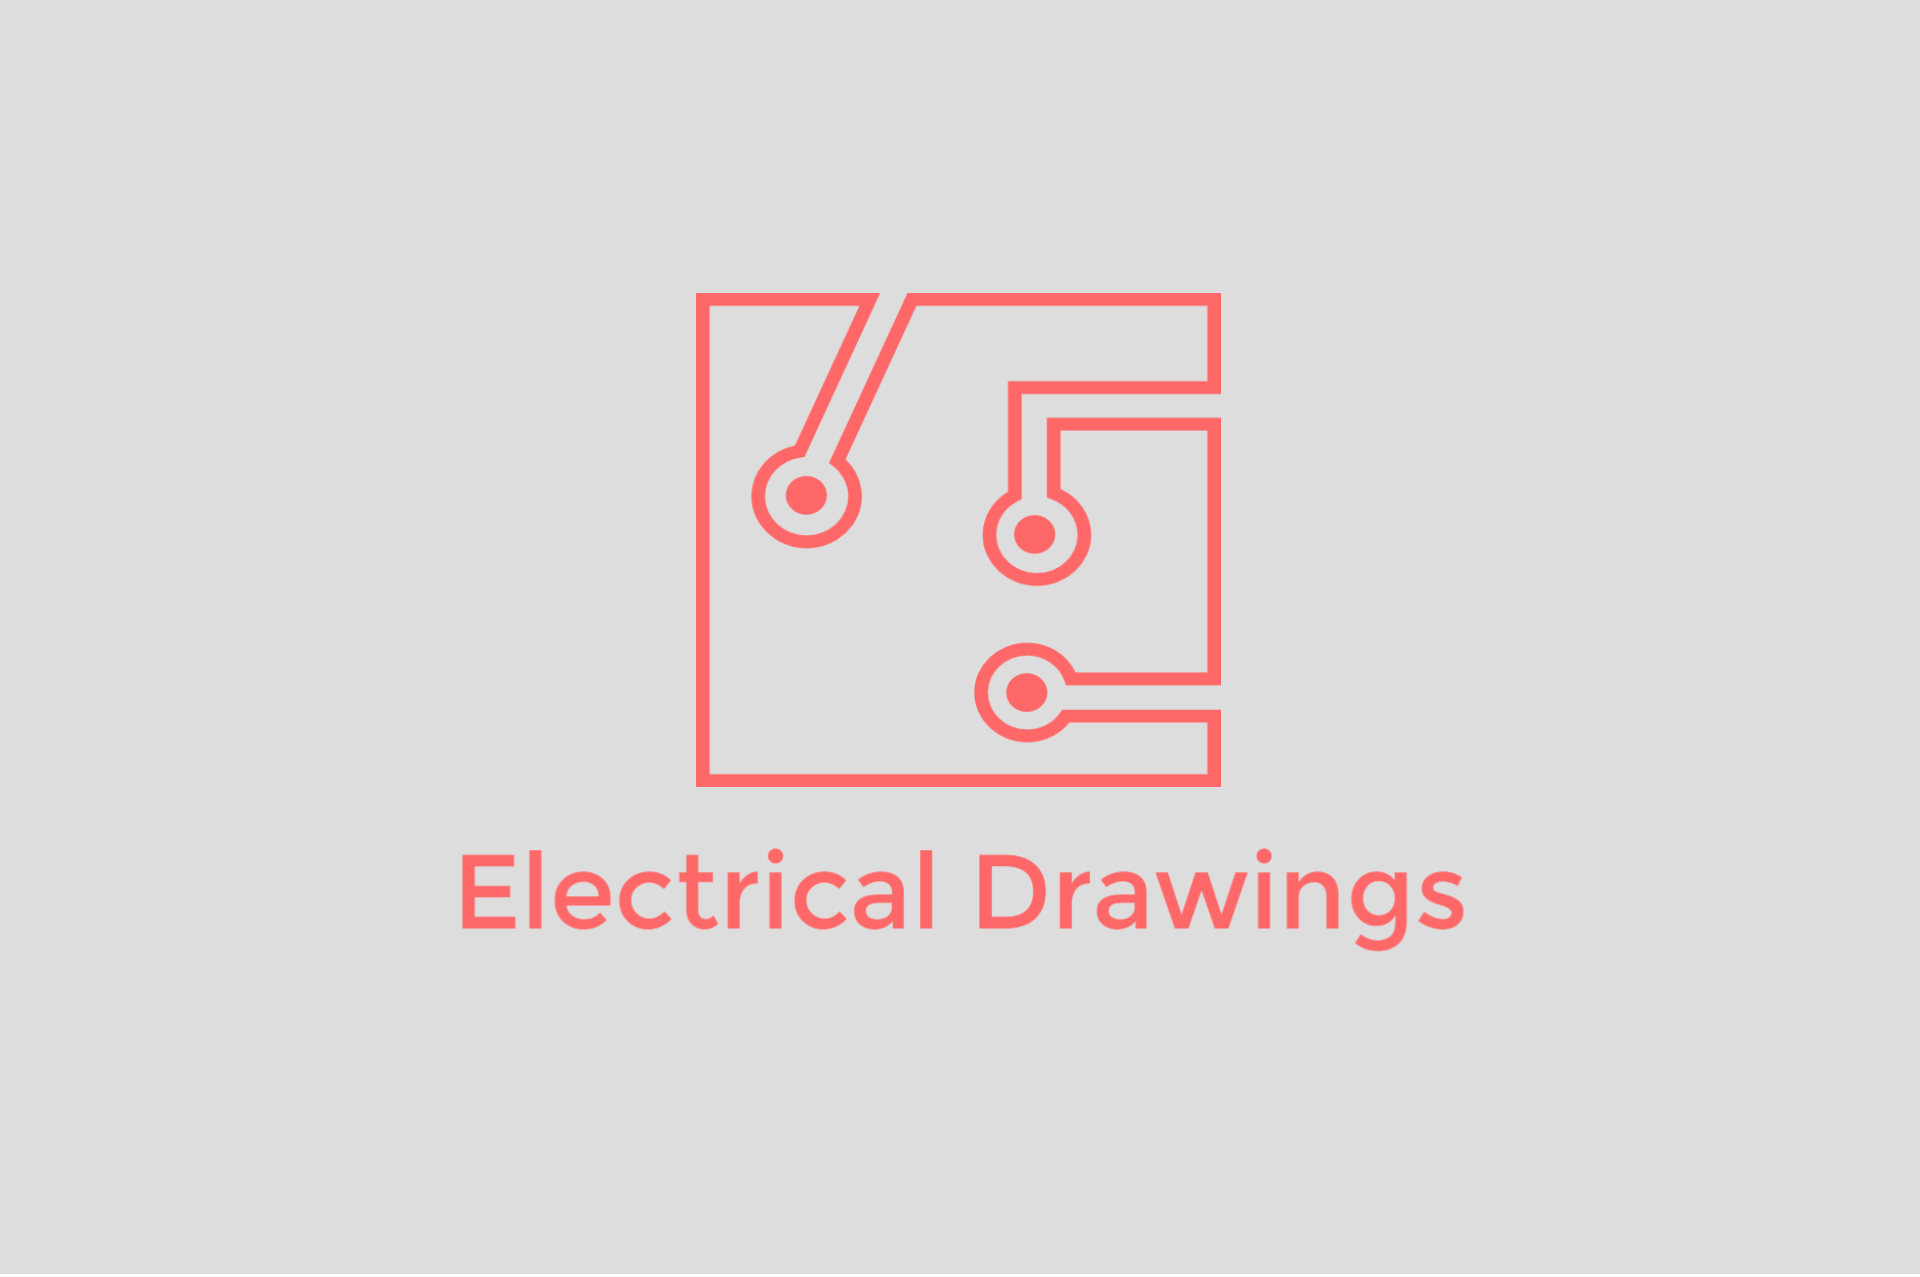 Electrical One Line Diagram Archtoolbox in addition Attraction moreover Basic Fire Alarm Systems I moreover Wiring Diagram For A Smoke Detector Alarm further Mep Bim Project. on fire alarm riser diagrams samples